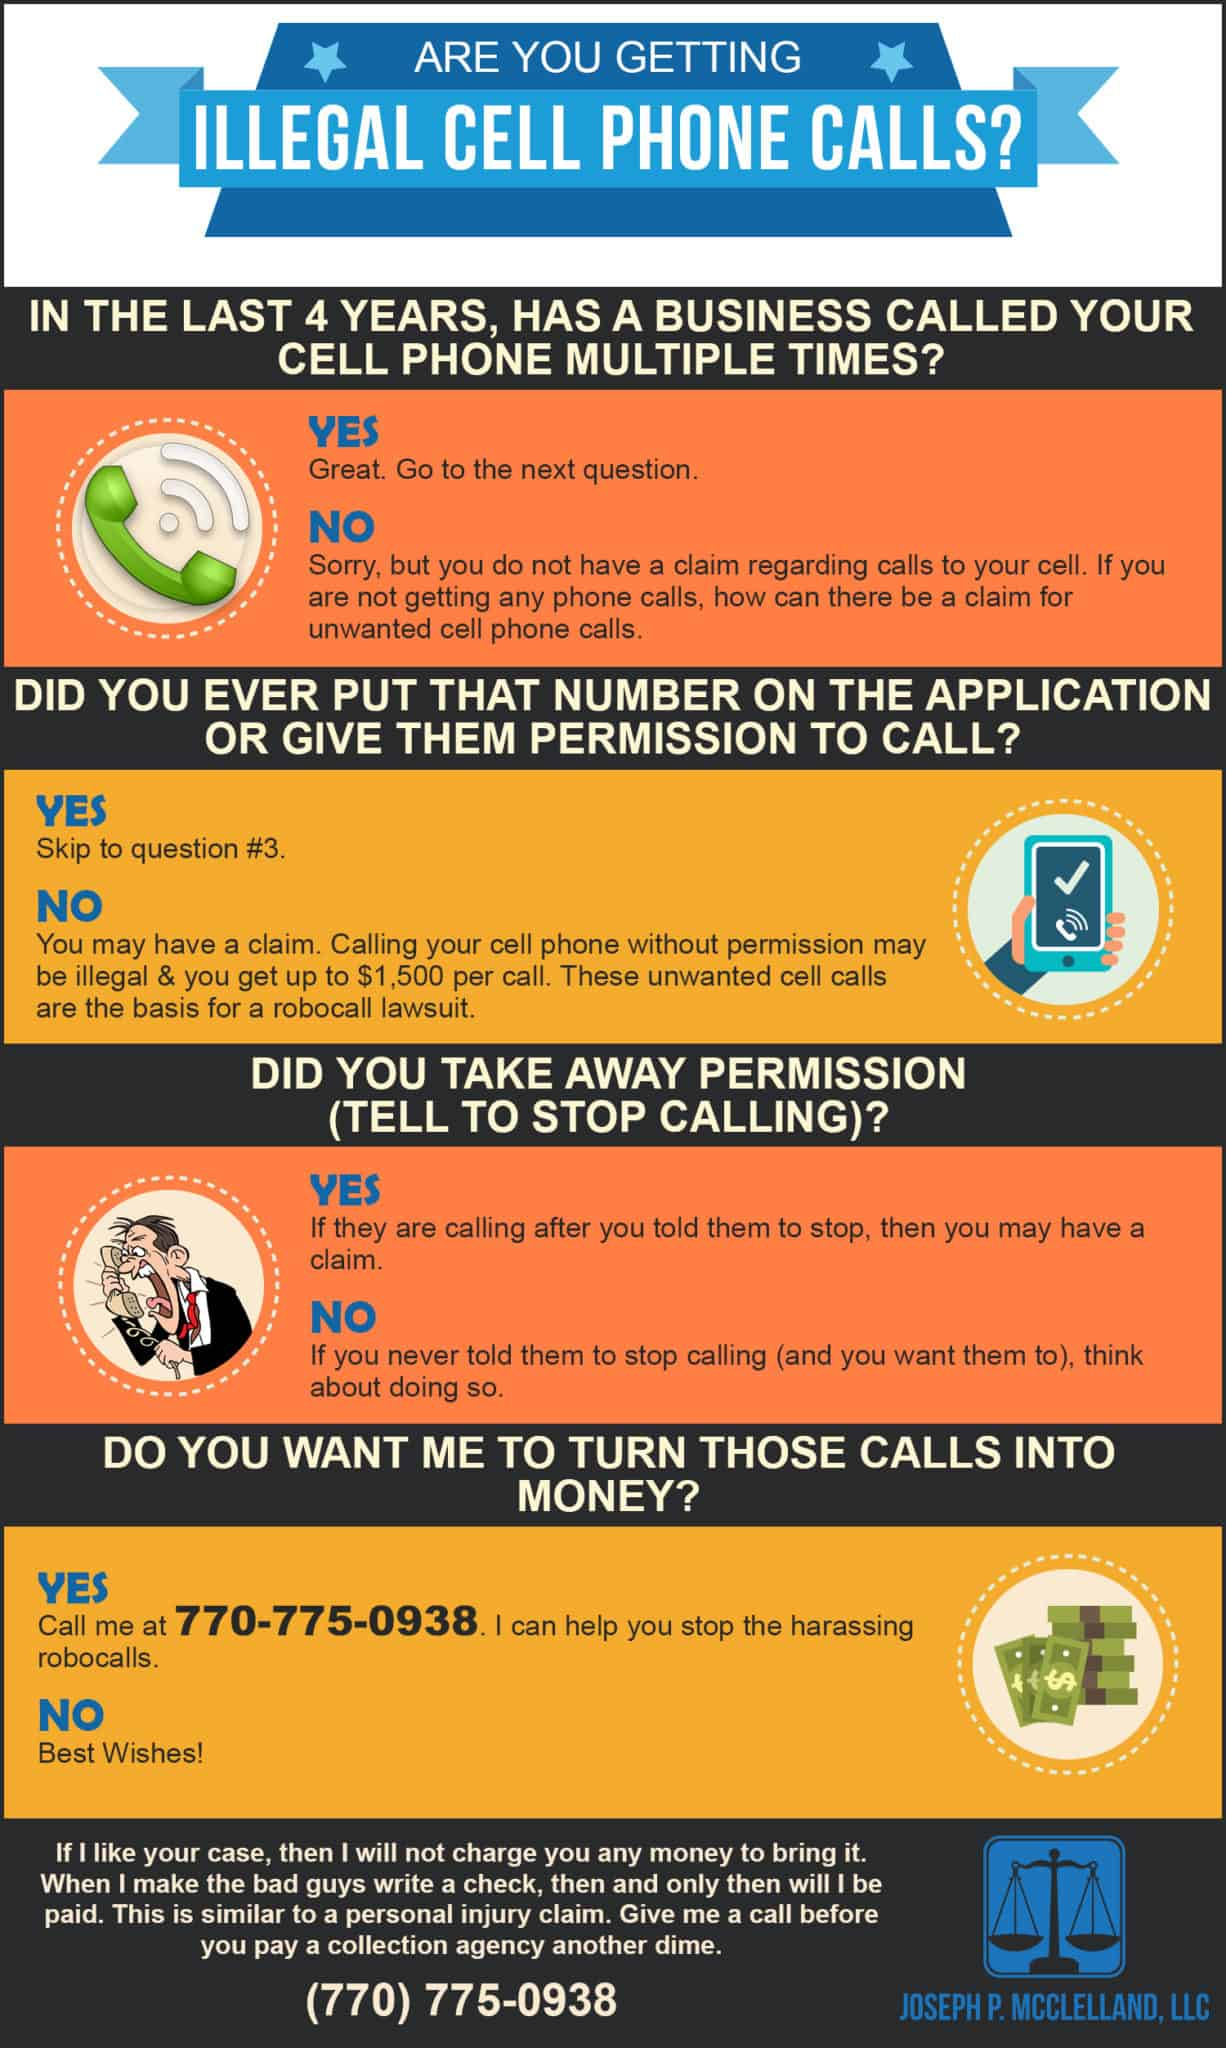 Are you getting illegal cell phone calls